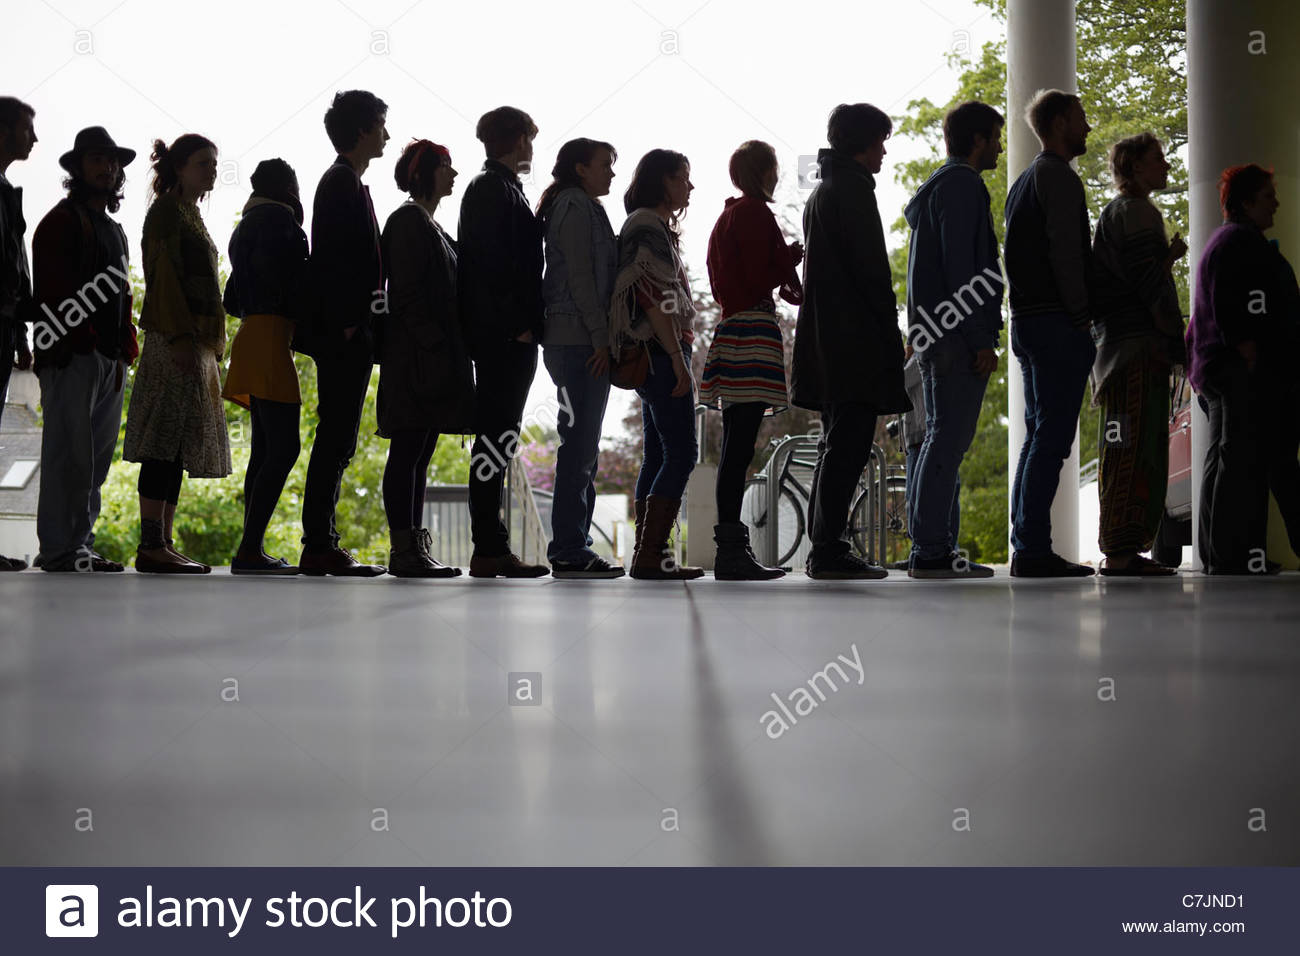 Silhouette of people standing in line - Stock Image